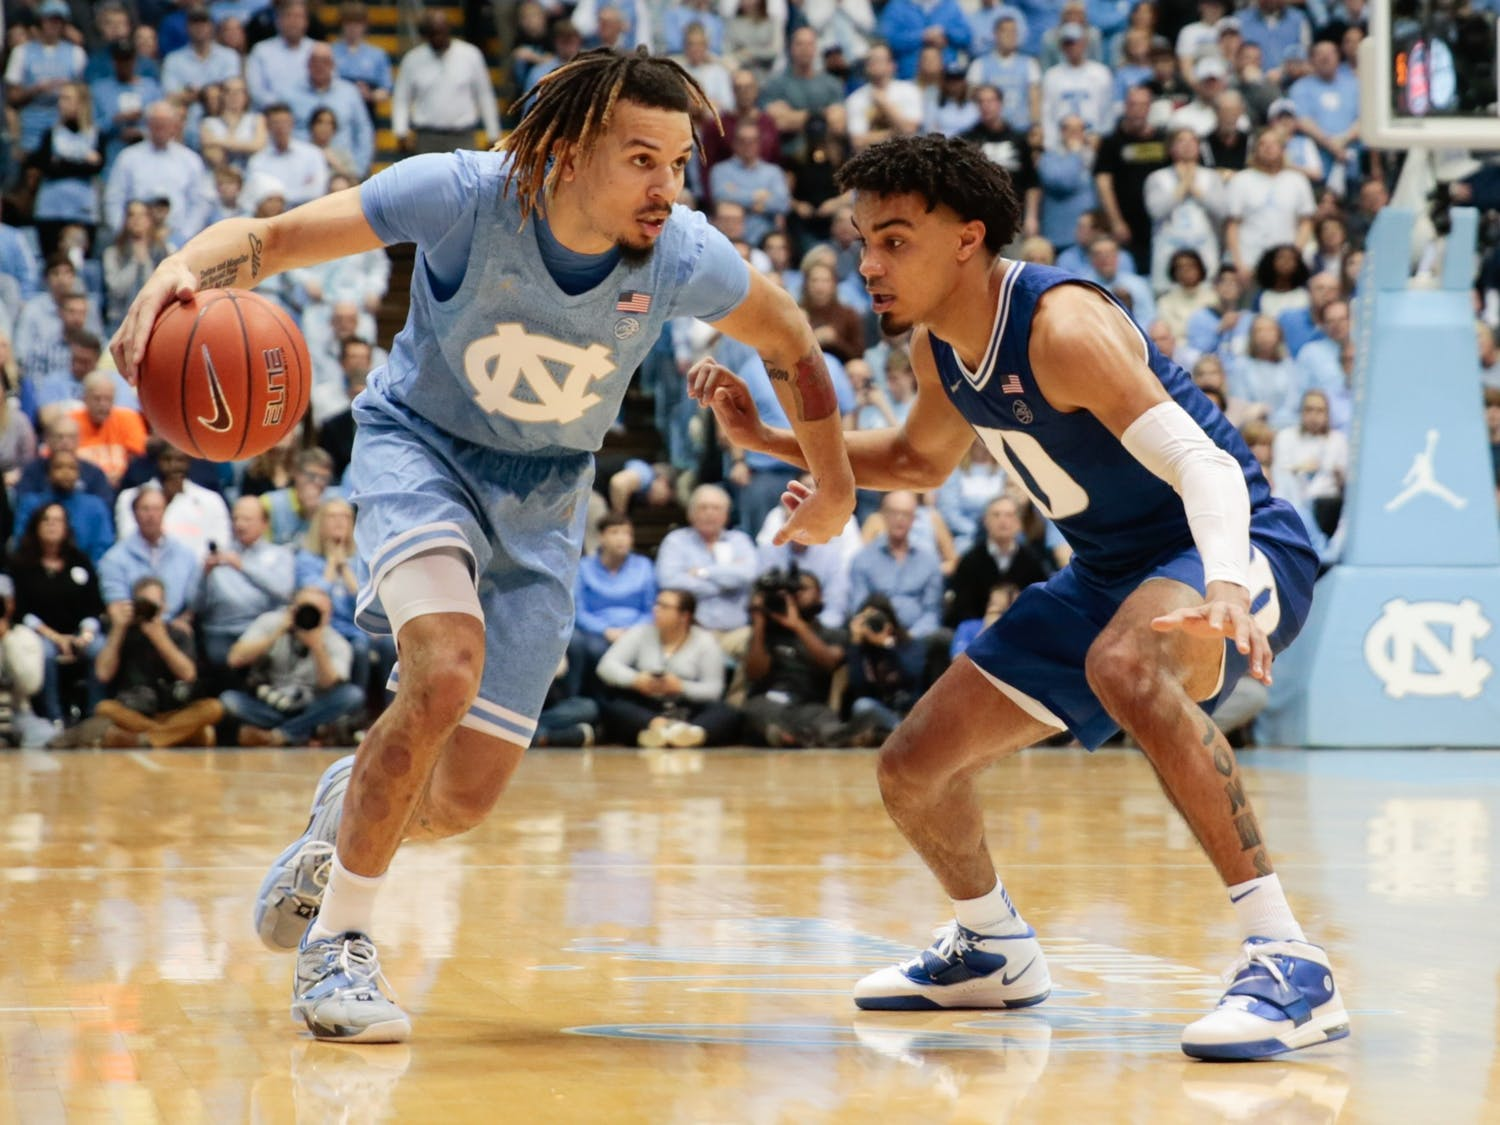 UNC first-year guard Cole Anthony runs the ball upcourt past Duke sophomore guard Tre Jones during a game in the Smith Center during Saturday, Feb. 8, 2020. The Tar Heels lost tot he Blue Devils 98-96.